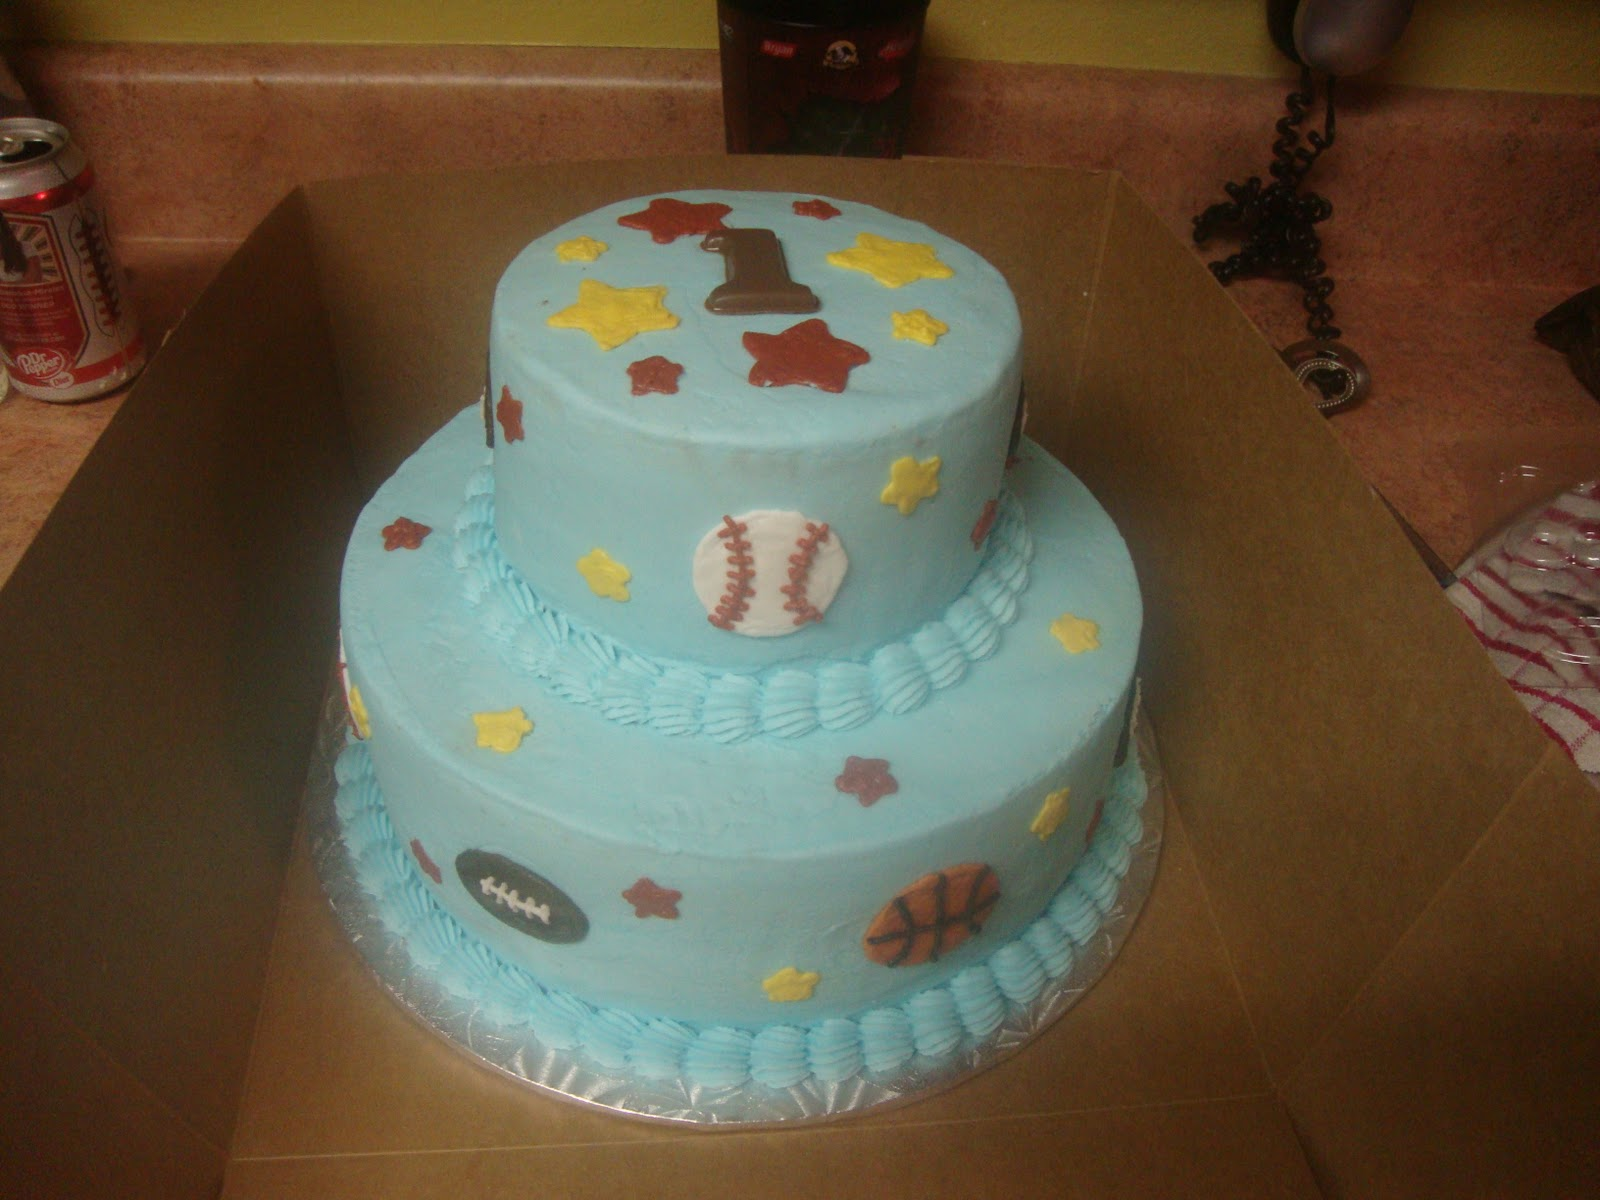 Bday Cake Images For Baby Boy : Charity s Sunshine Sweets: BABY BOY S 1ST BIRTHDAY CAKE